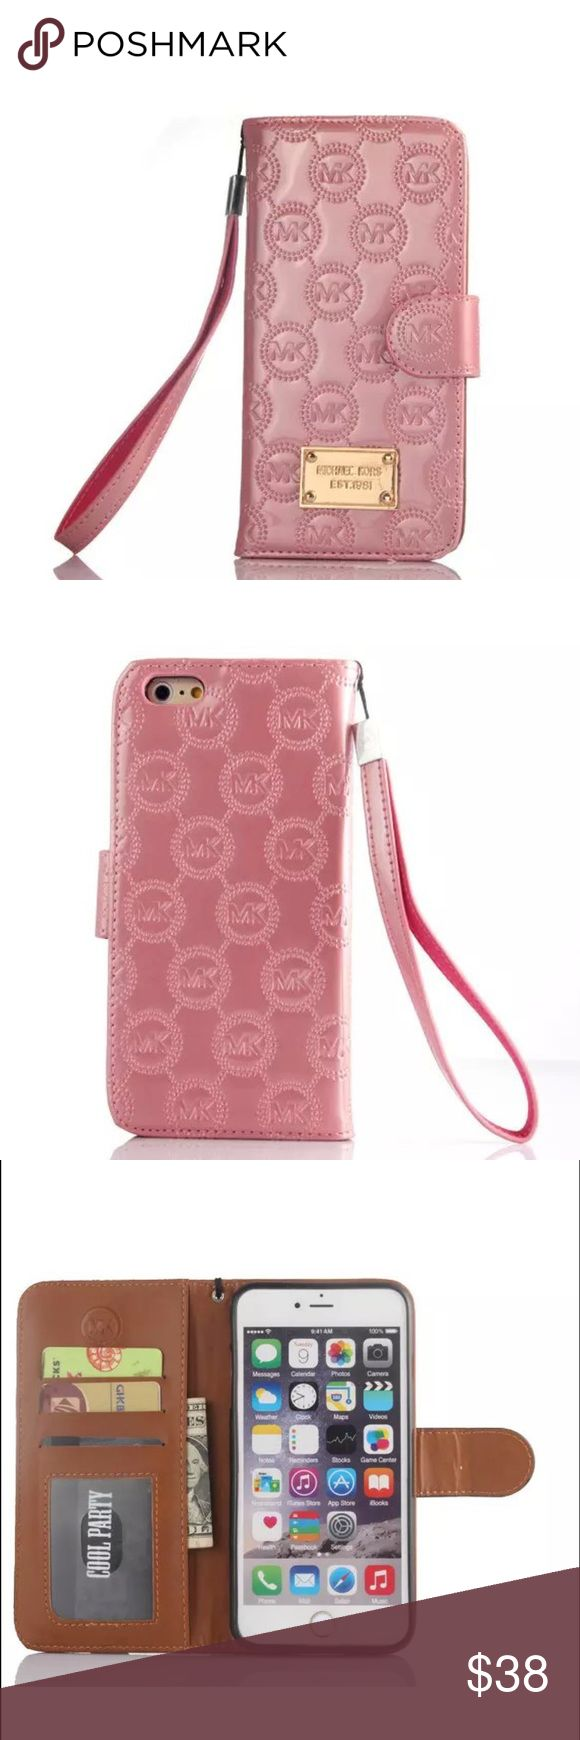 NWT Michael Kors Flip Phone Case IPhone 7 NWT Michael Kors Flip Phone Case for iPhone 7 in Embossed Pink Patent Leather with 3 slots for cards a slip pocket for cash, receipts anything you'd like! All in one portability!! Magnetic Closure no trades price firm MICHAEL Michael Kors Accessories Phone Cases